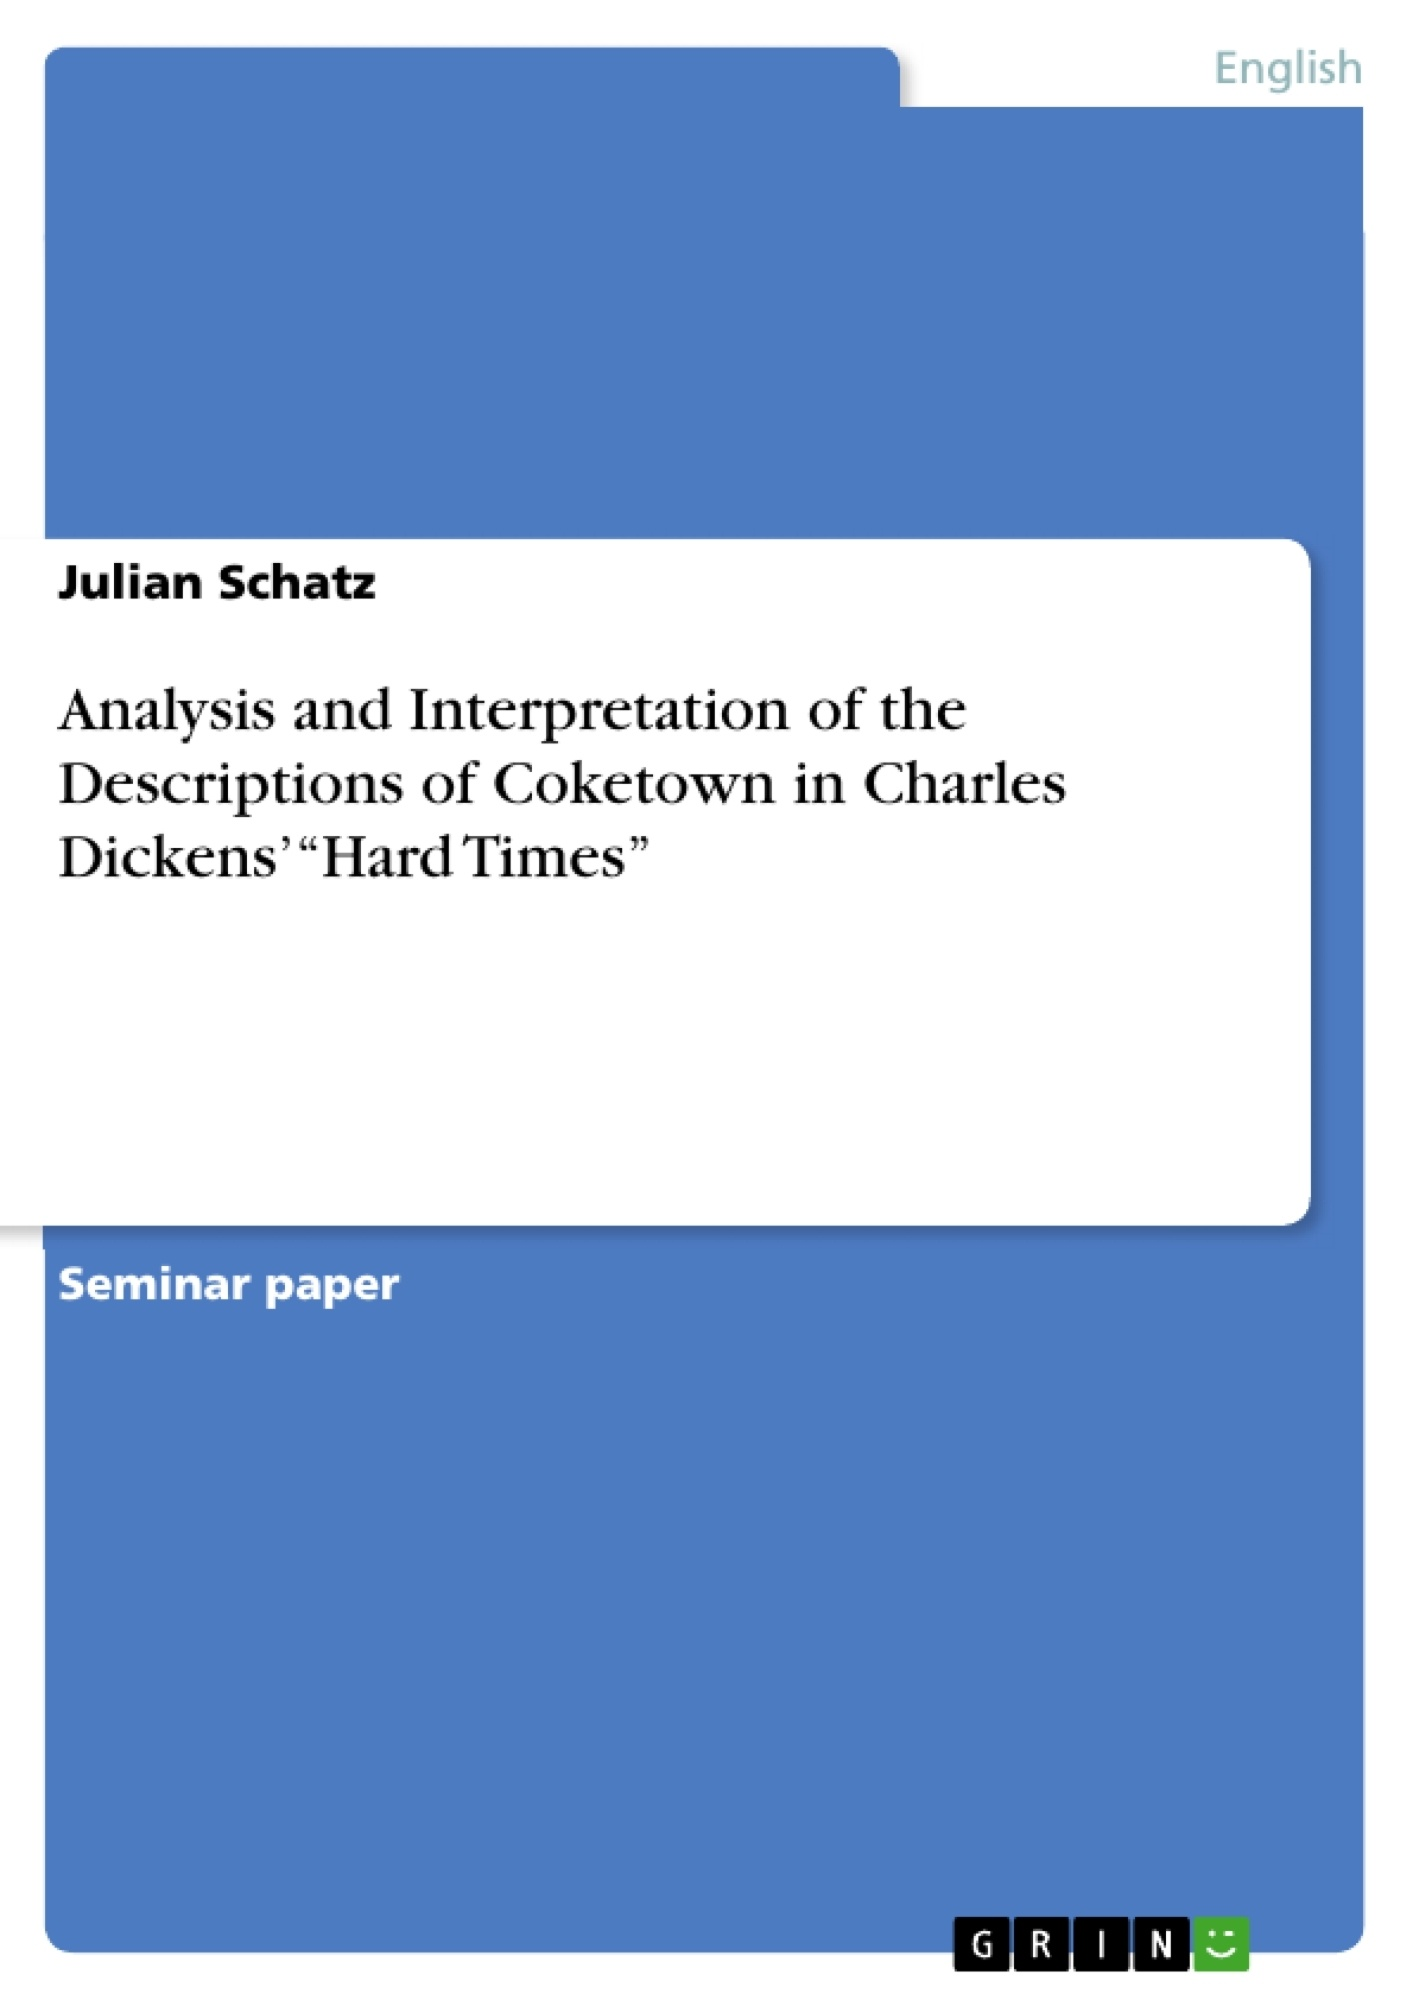 thesis charles dickens Charles dickens dissertation writing service to assist in writing a graduate charles dickens thesis for a doctoral thesis defense.